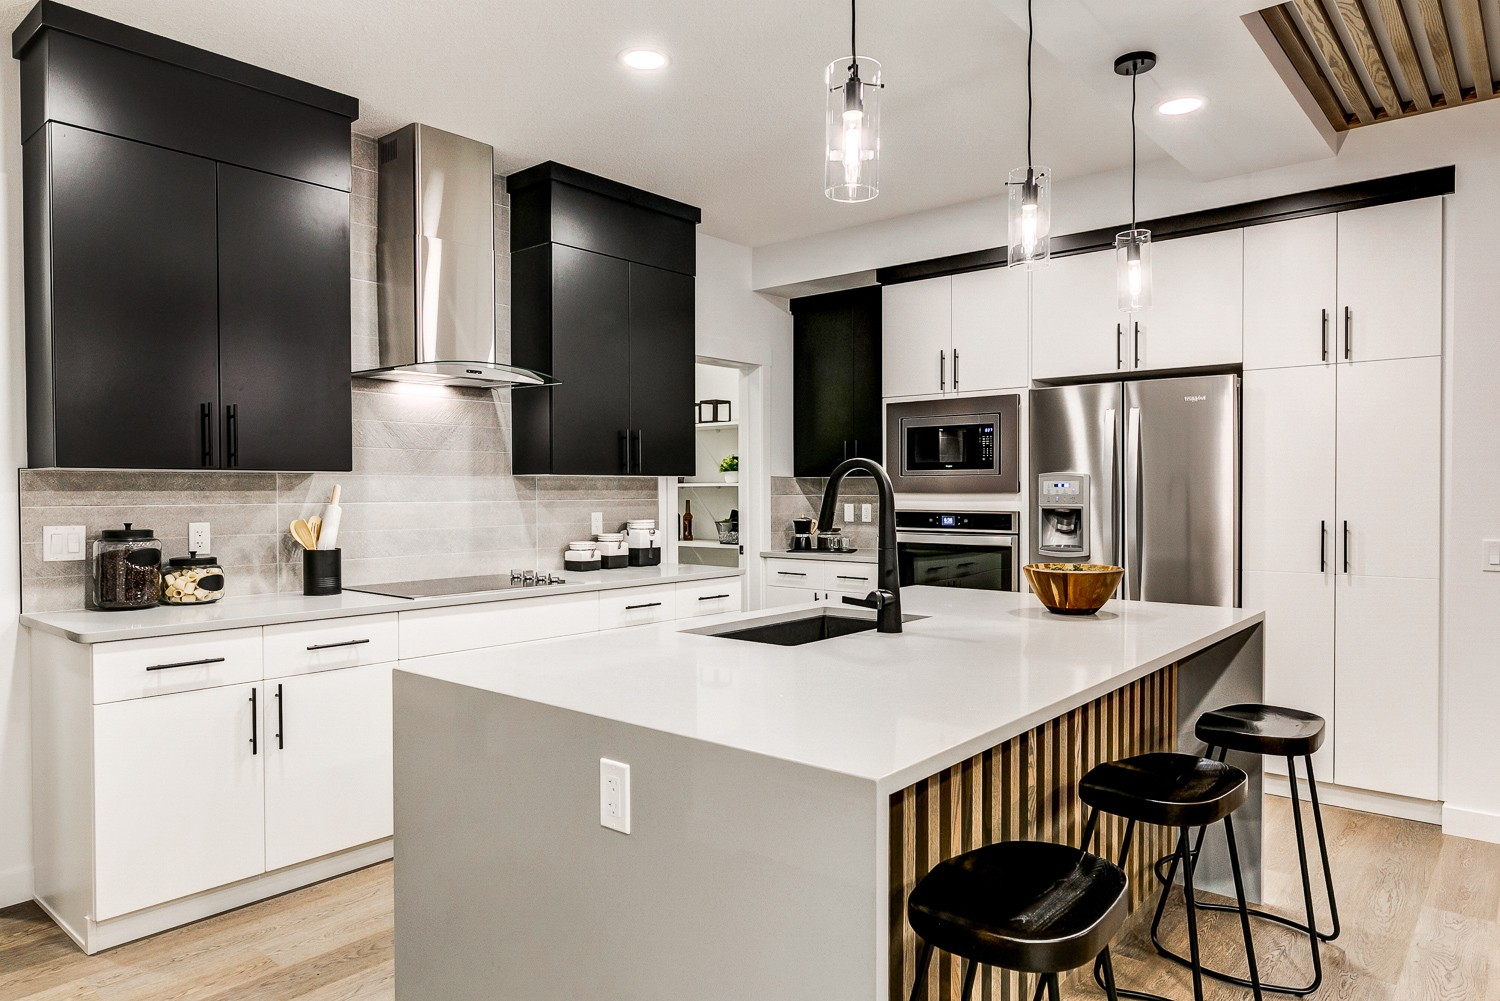 Kitchen designed by Edmonton's Best New Home Builder